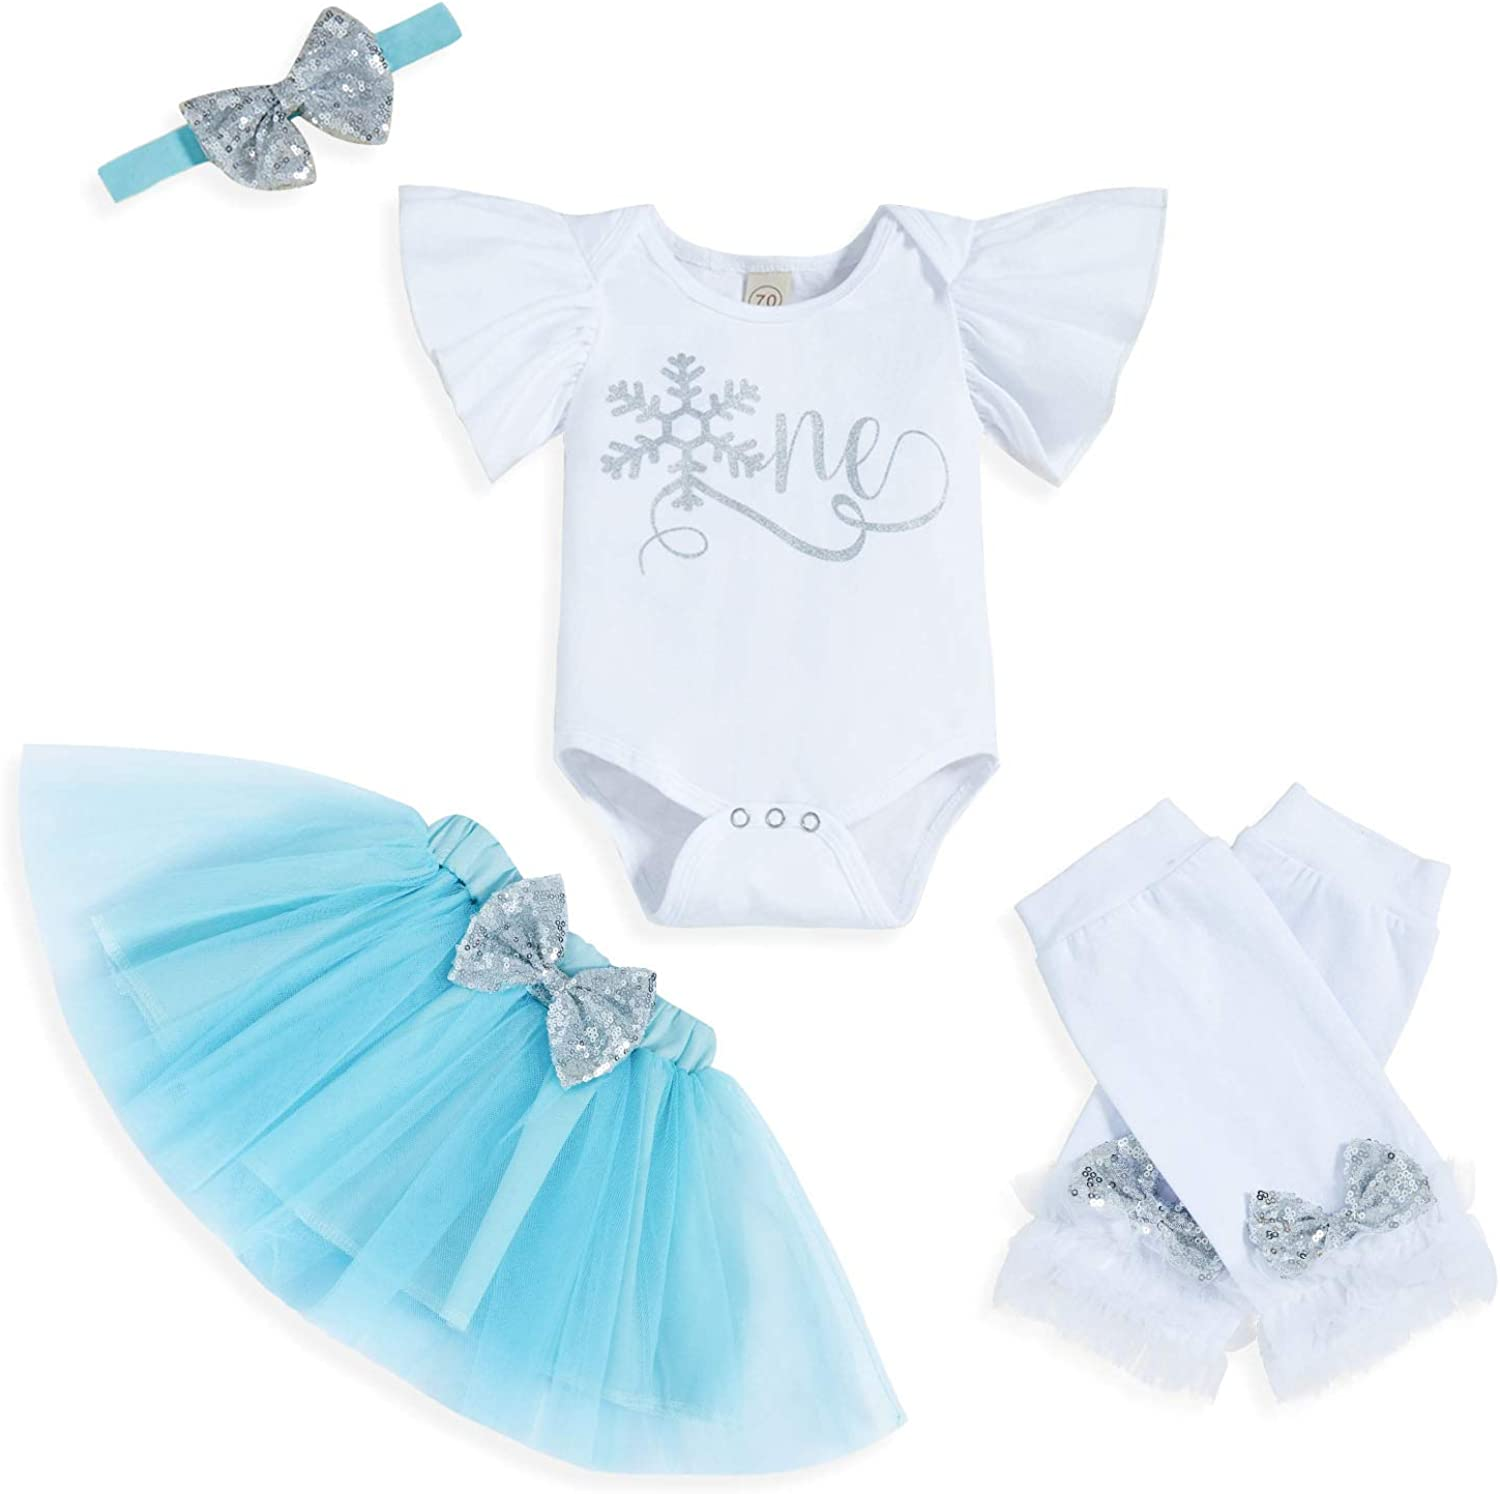 Baby Girl My 1st Birthday Outfit Long Sleeve Letter Print Romper + Tutu Skirt Leg Warmers with Headband 4pcs Clothes Set